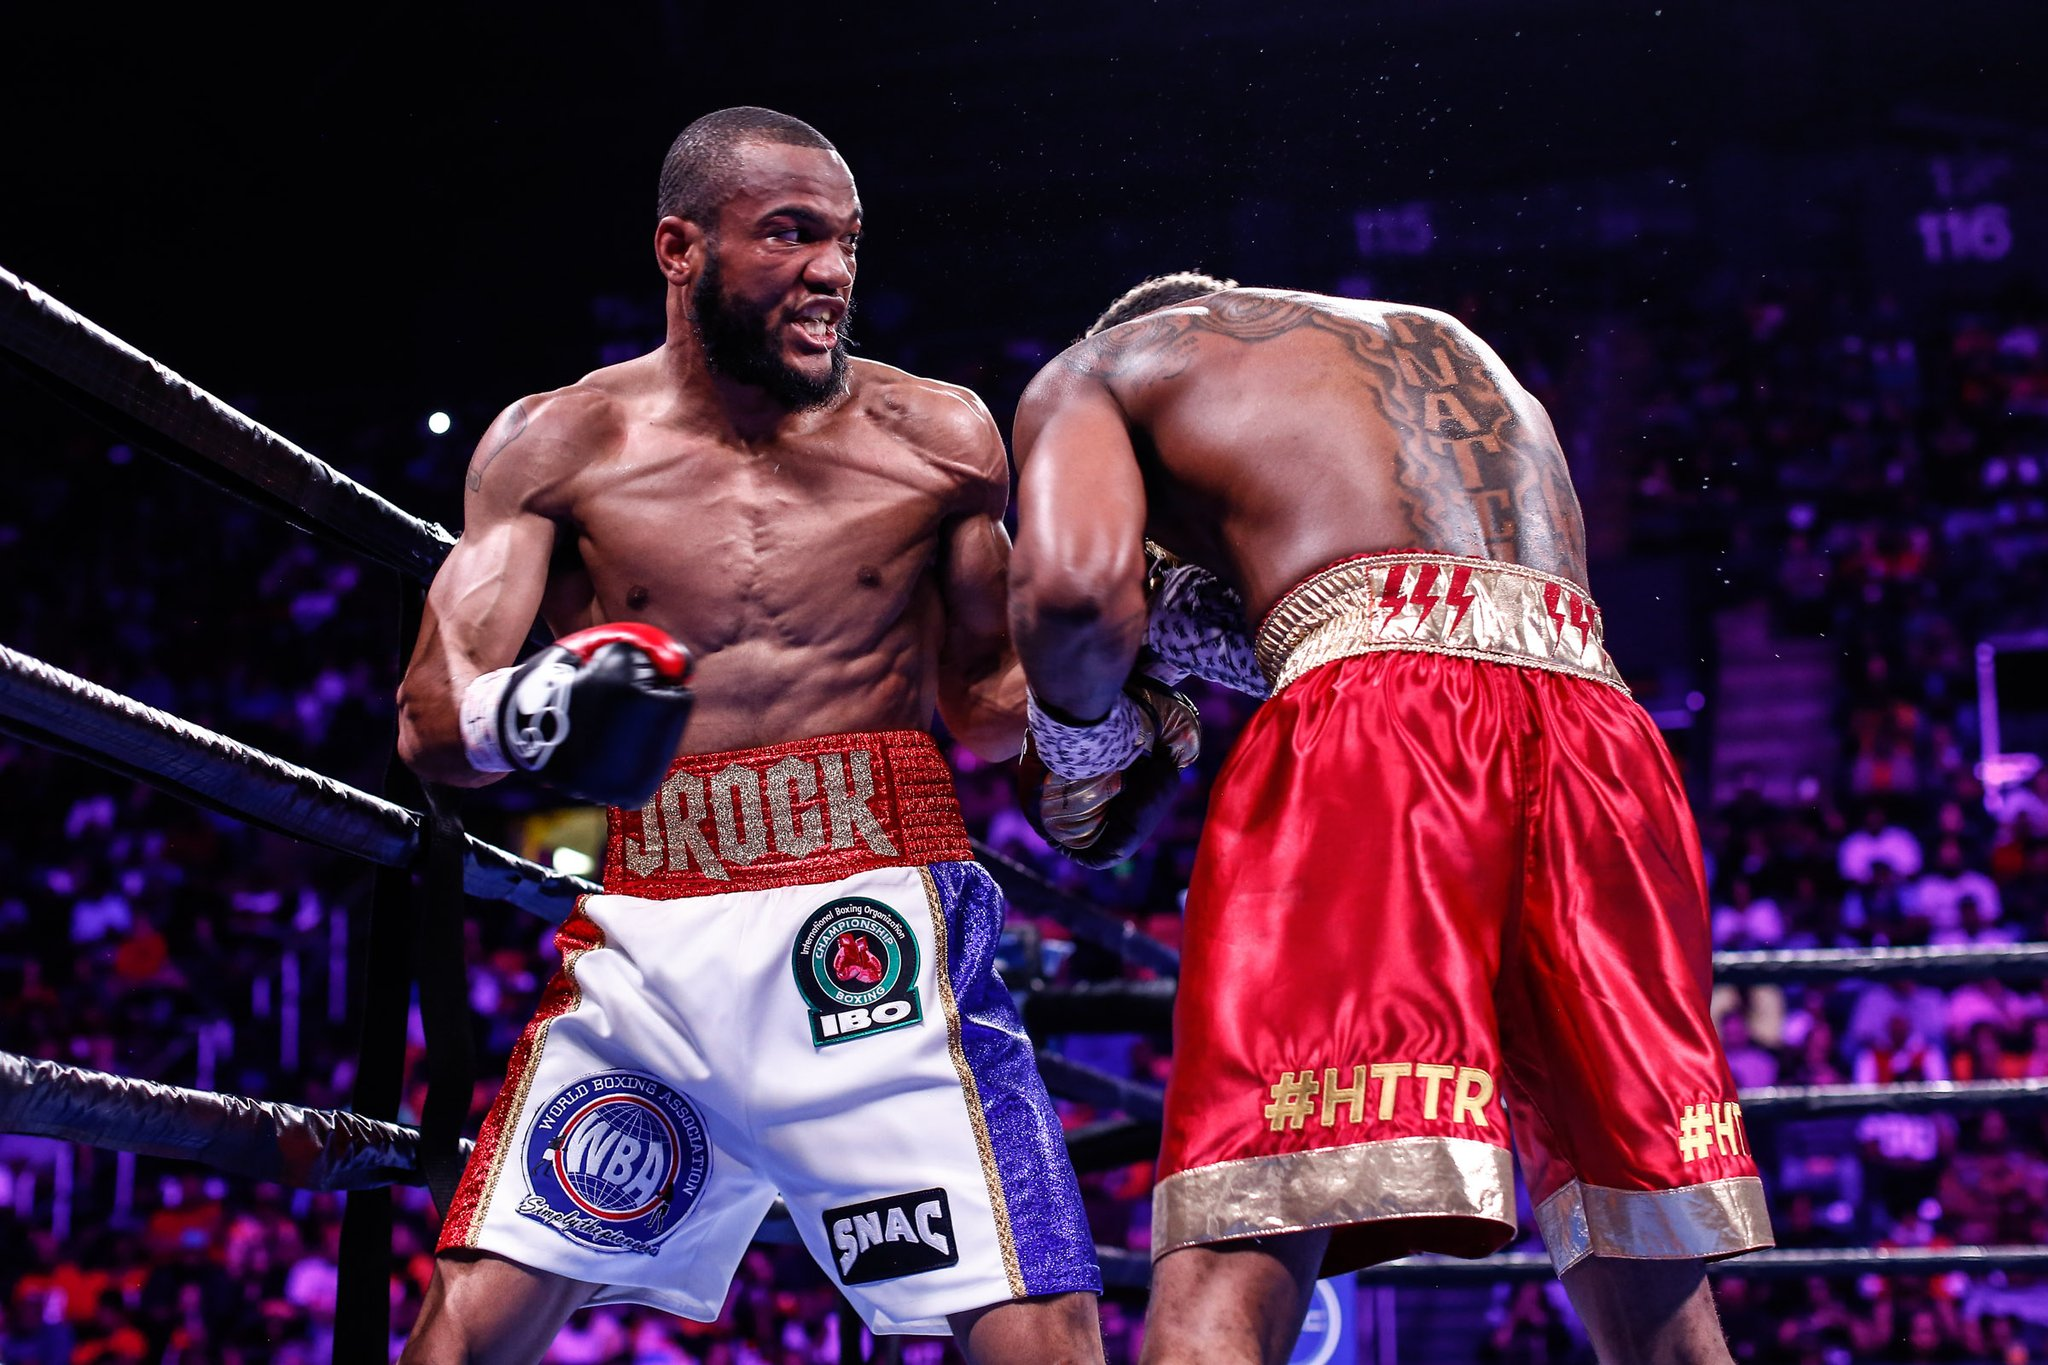 Julian Williams sorprende y le quita el invicto a Jarrett Hurd